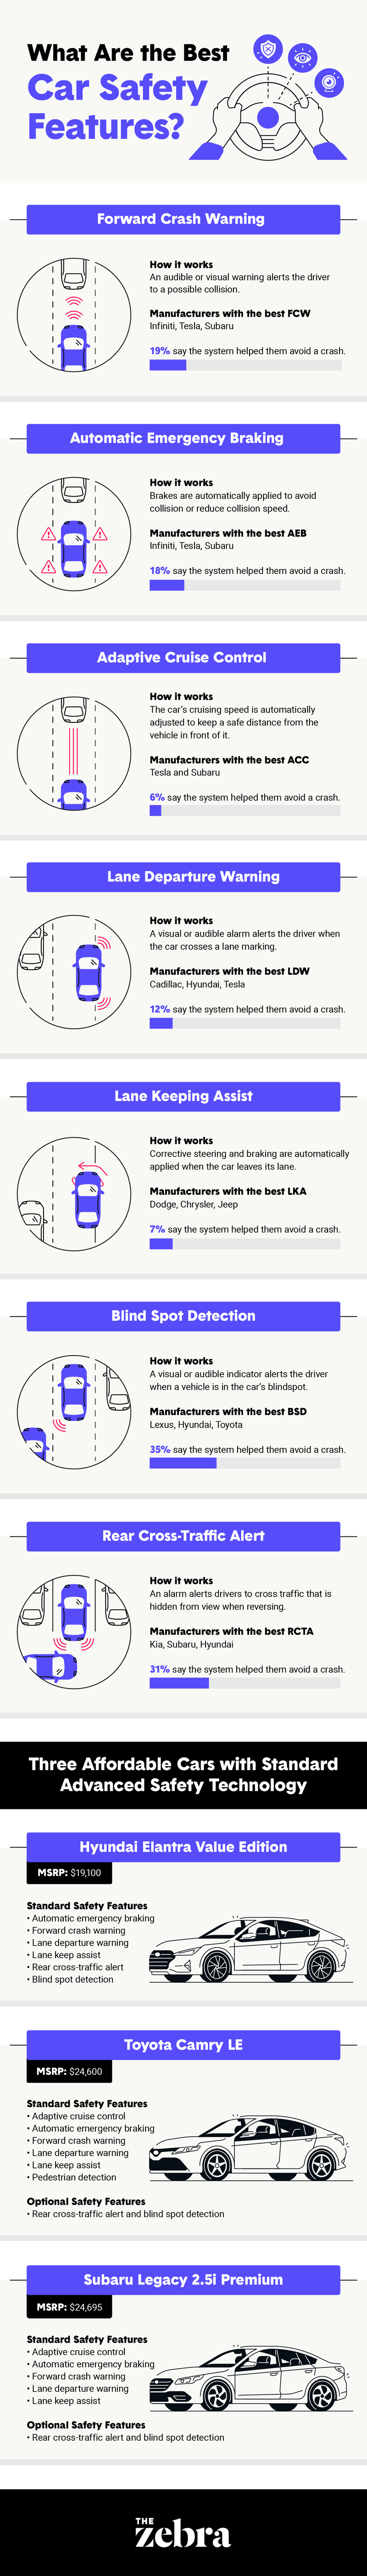 what-are-the-best-car-safety-features.png